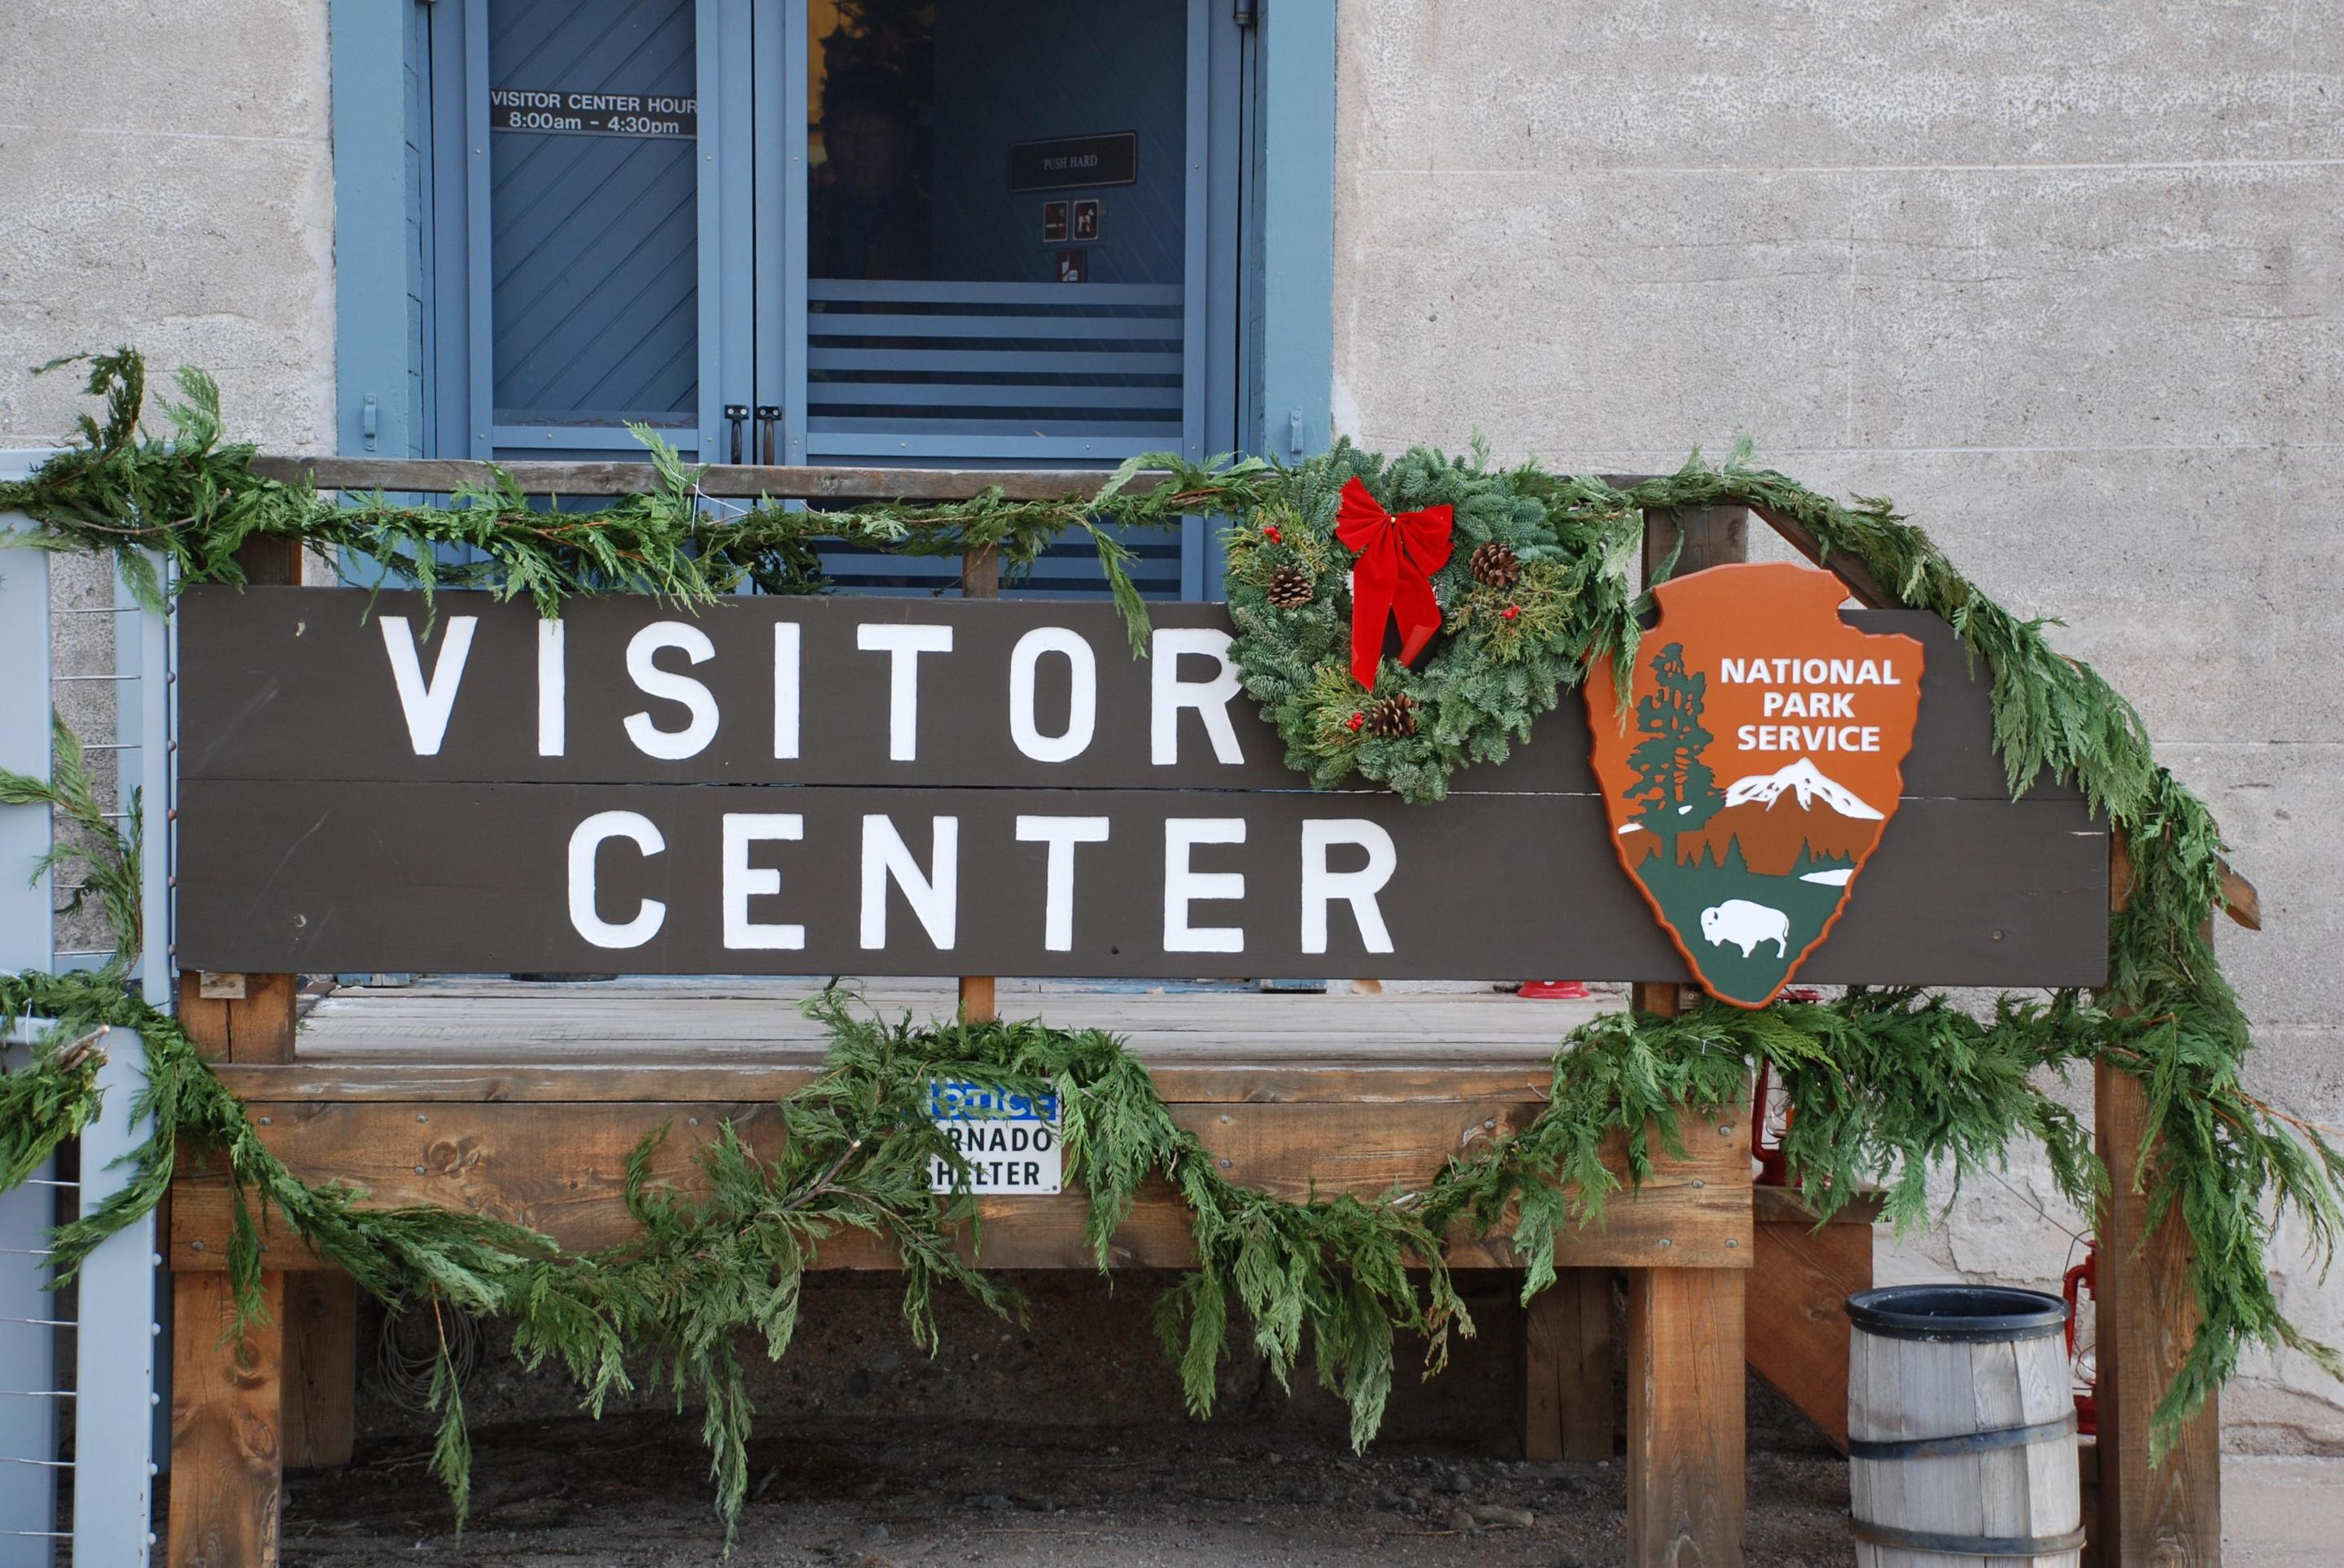 Visitor Center with Holiday DecorationsHolidays at Fort Laramie Visitor Center